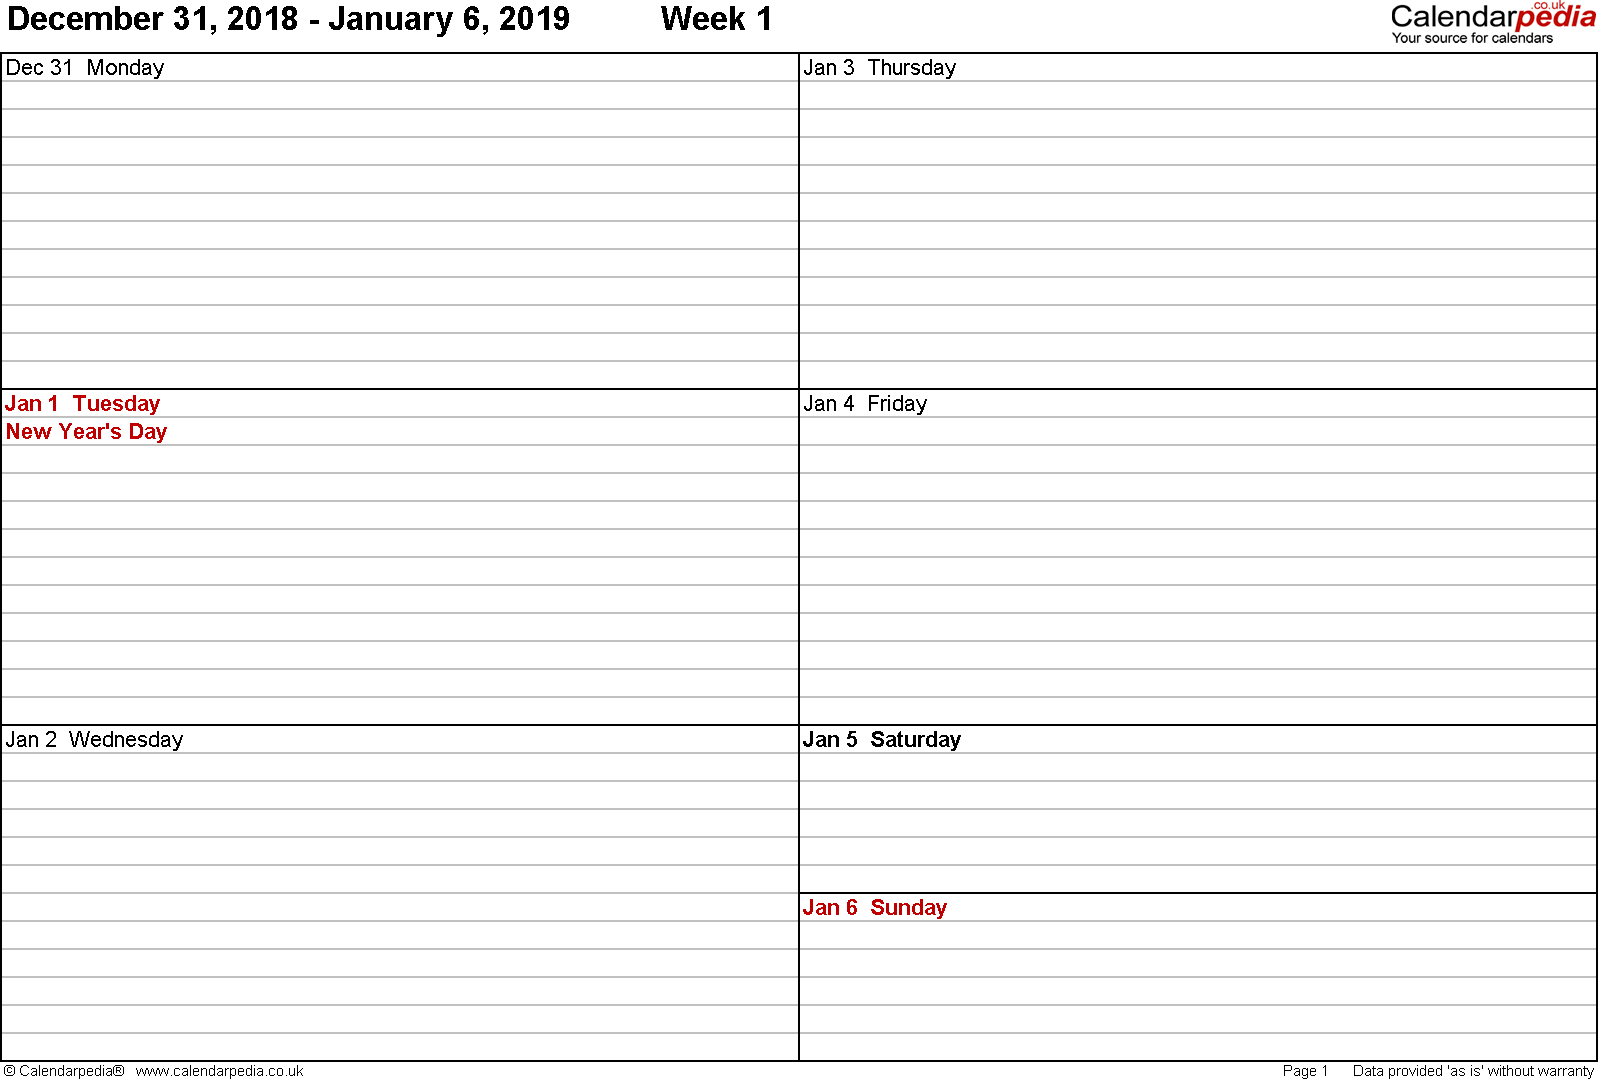 PDF template 5: Weekly calendar 2019, landscape orientation, 53 pages (1 calendar week on 1 page), week divided into 2 columns